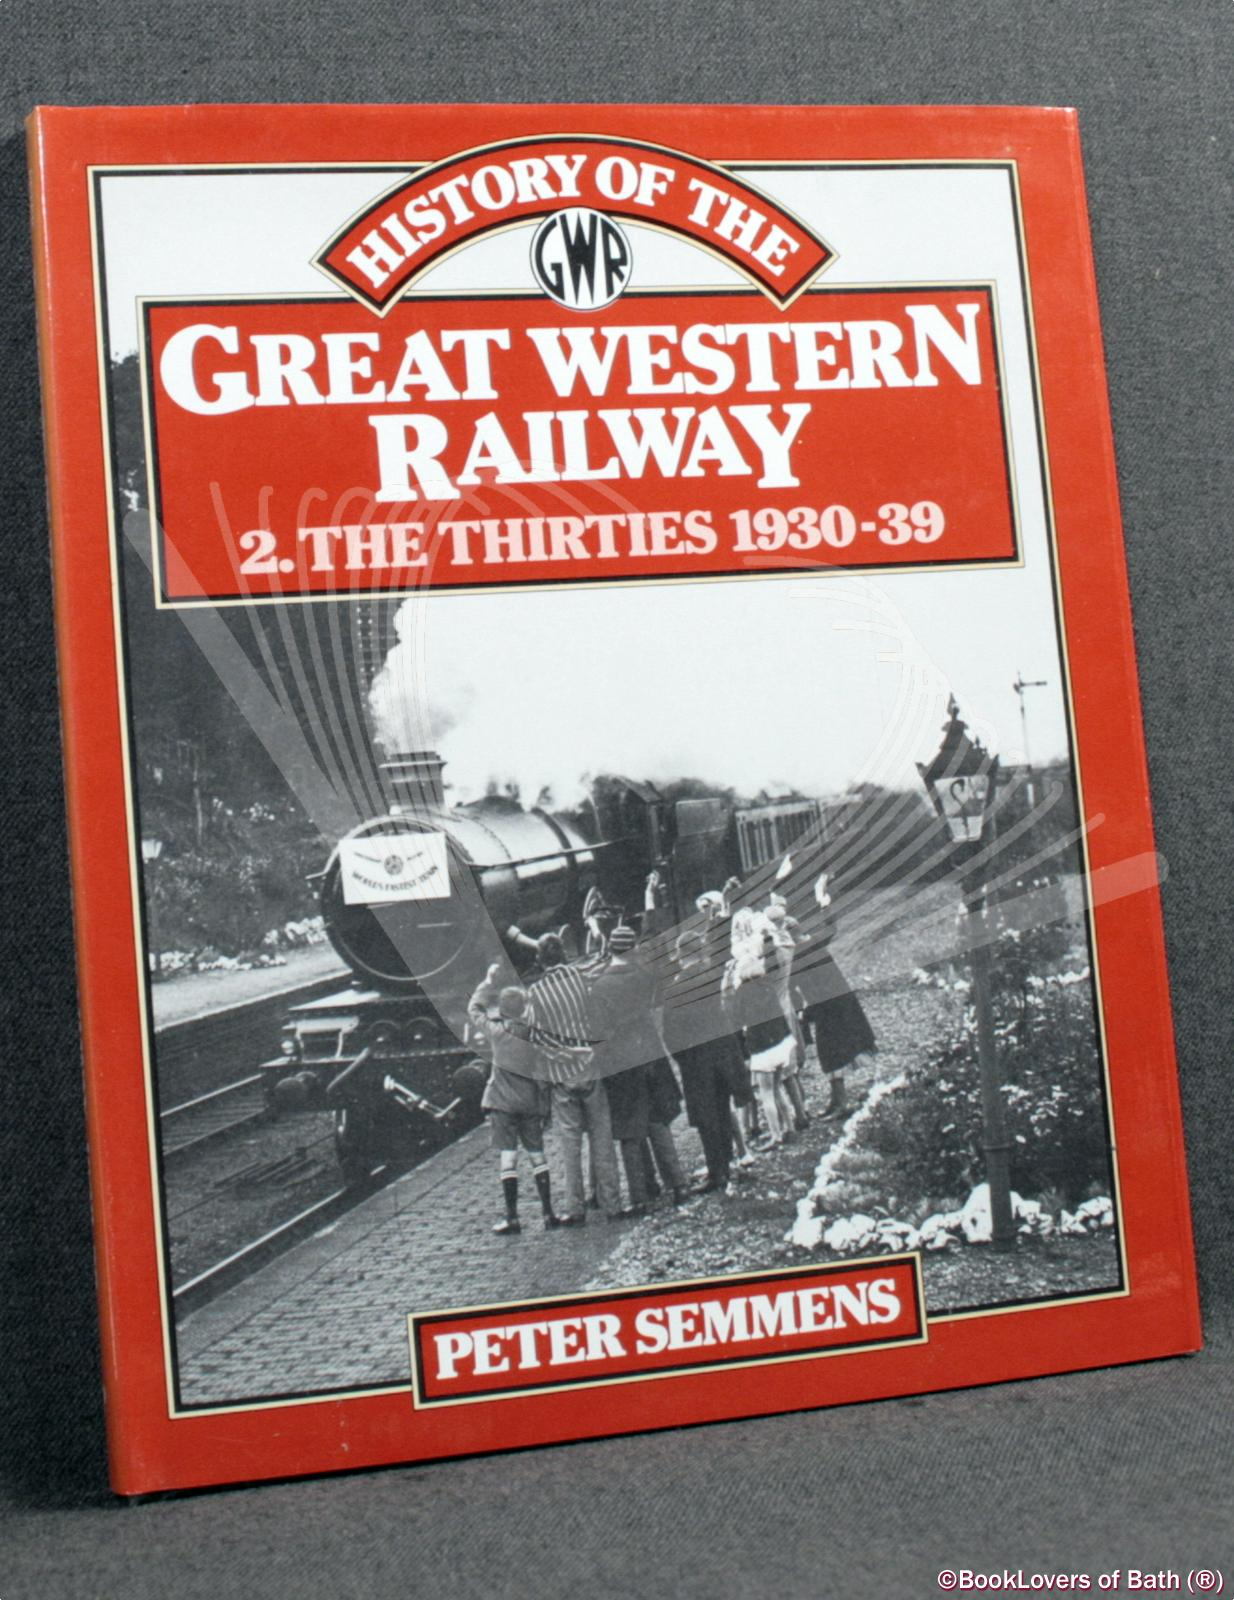 History of the Great Western Railway [3 Volumes] Peter Semmens